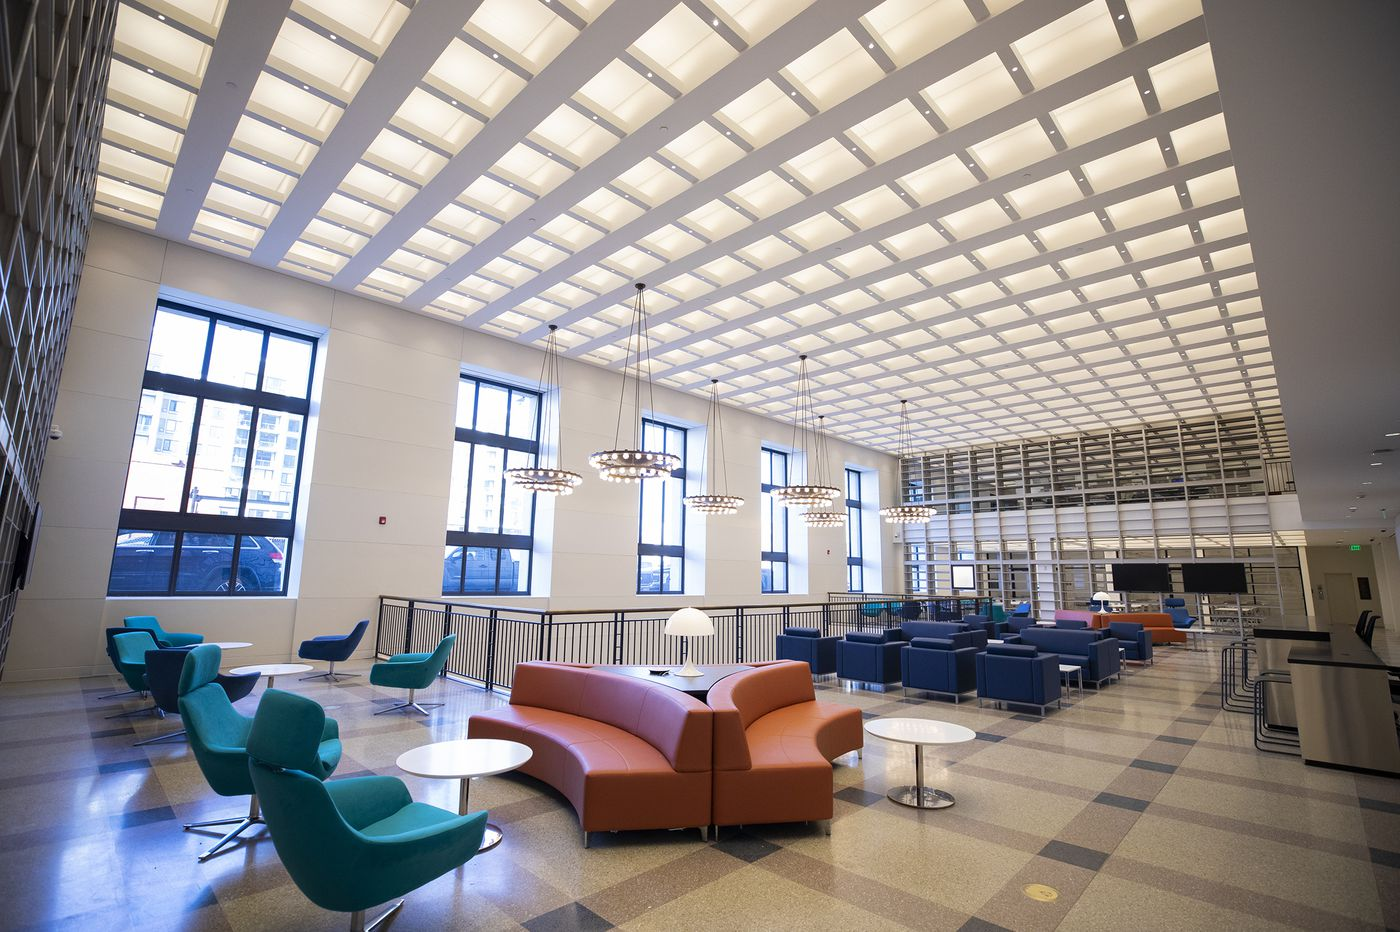 Free Library's new spaces open this weekend after more than a decade of renovations